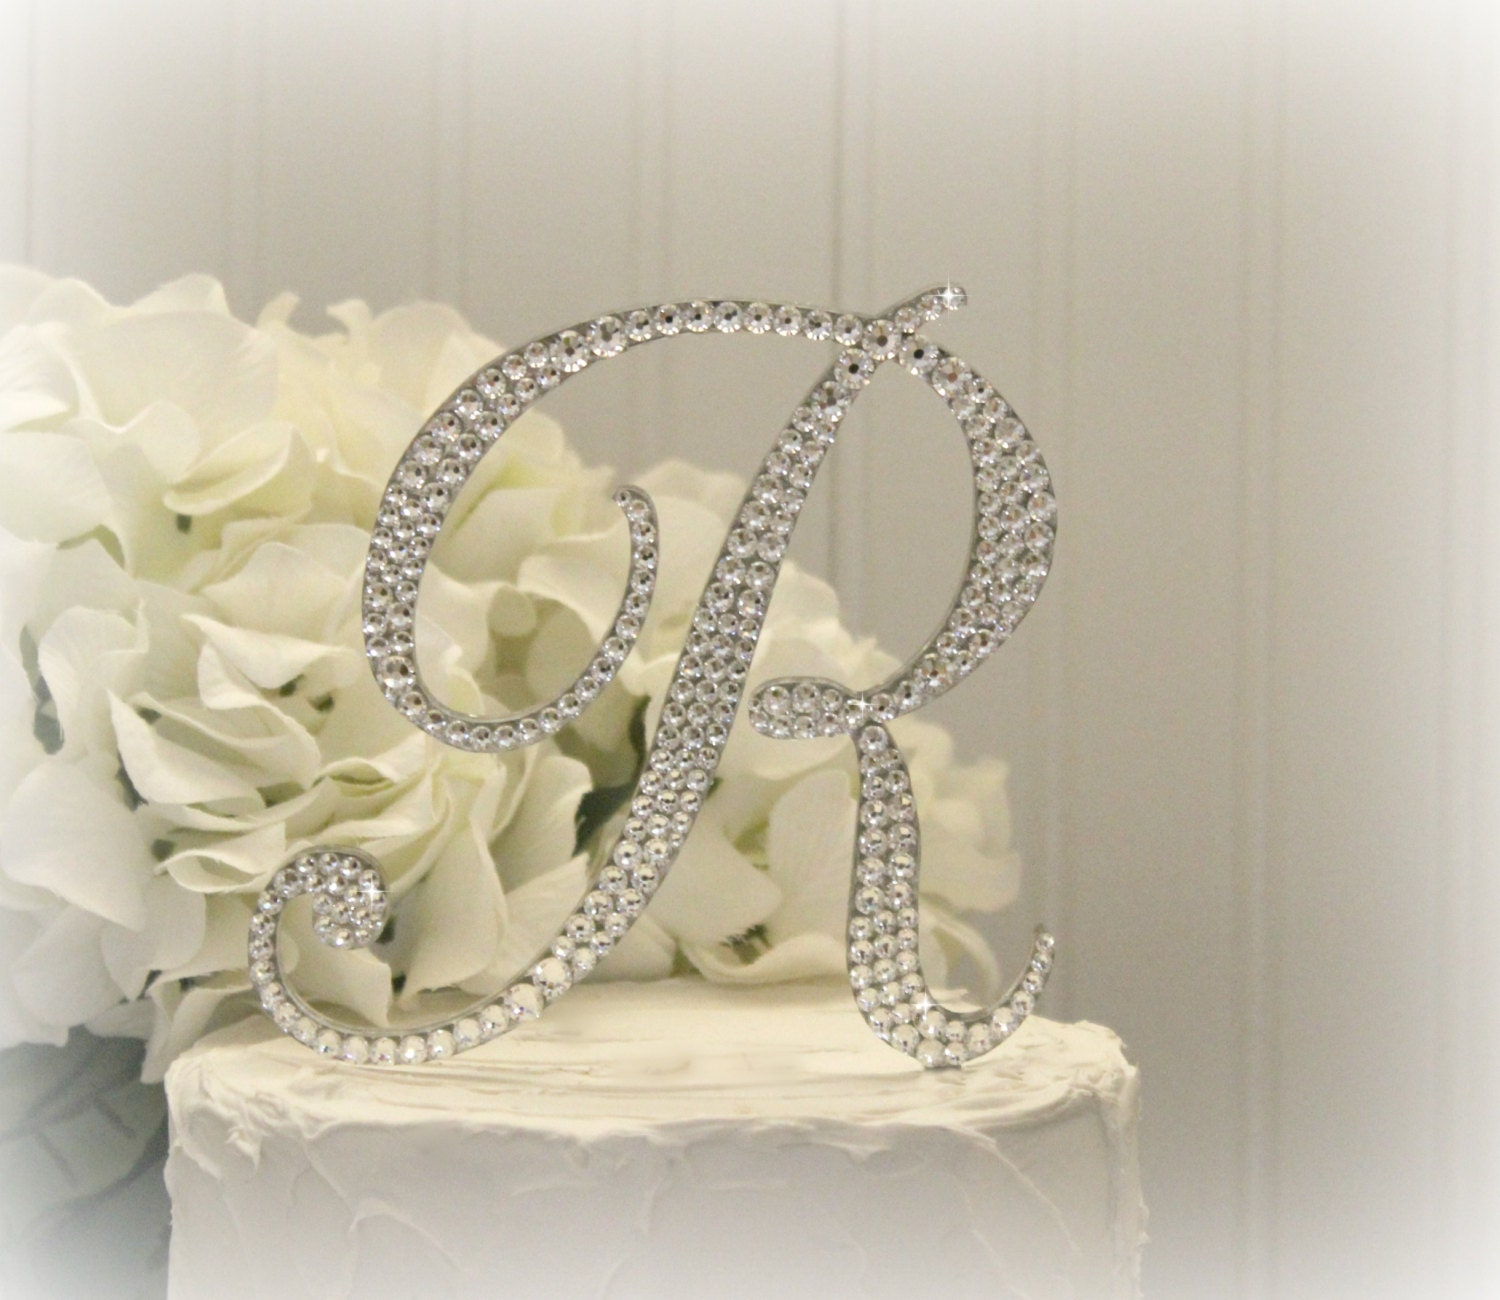 wedding cake topper letter wedding cake topper monogram cake topper letter cake topper 8805